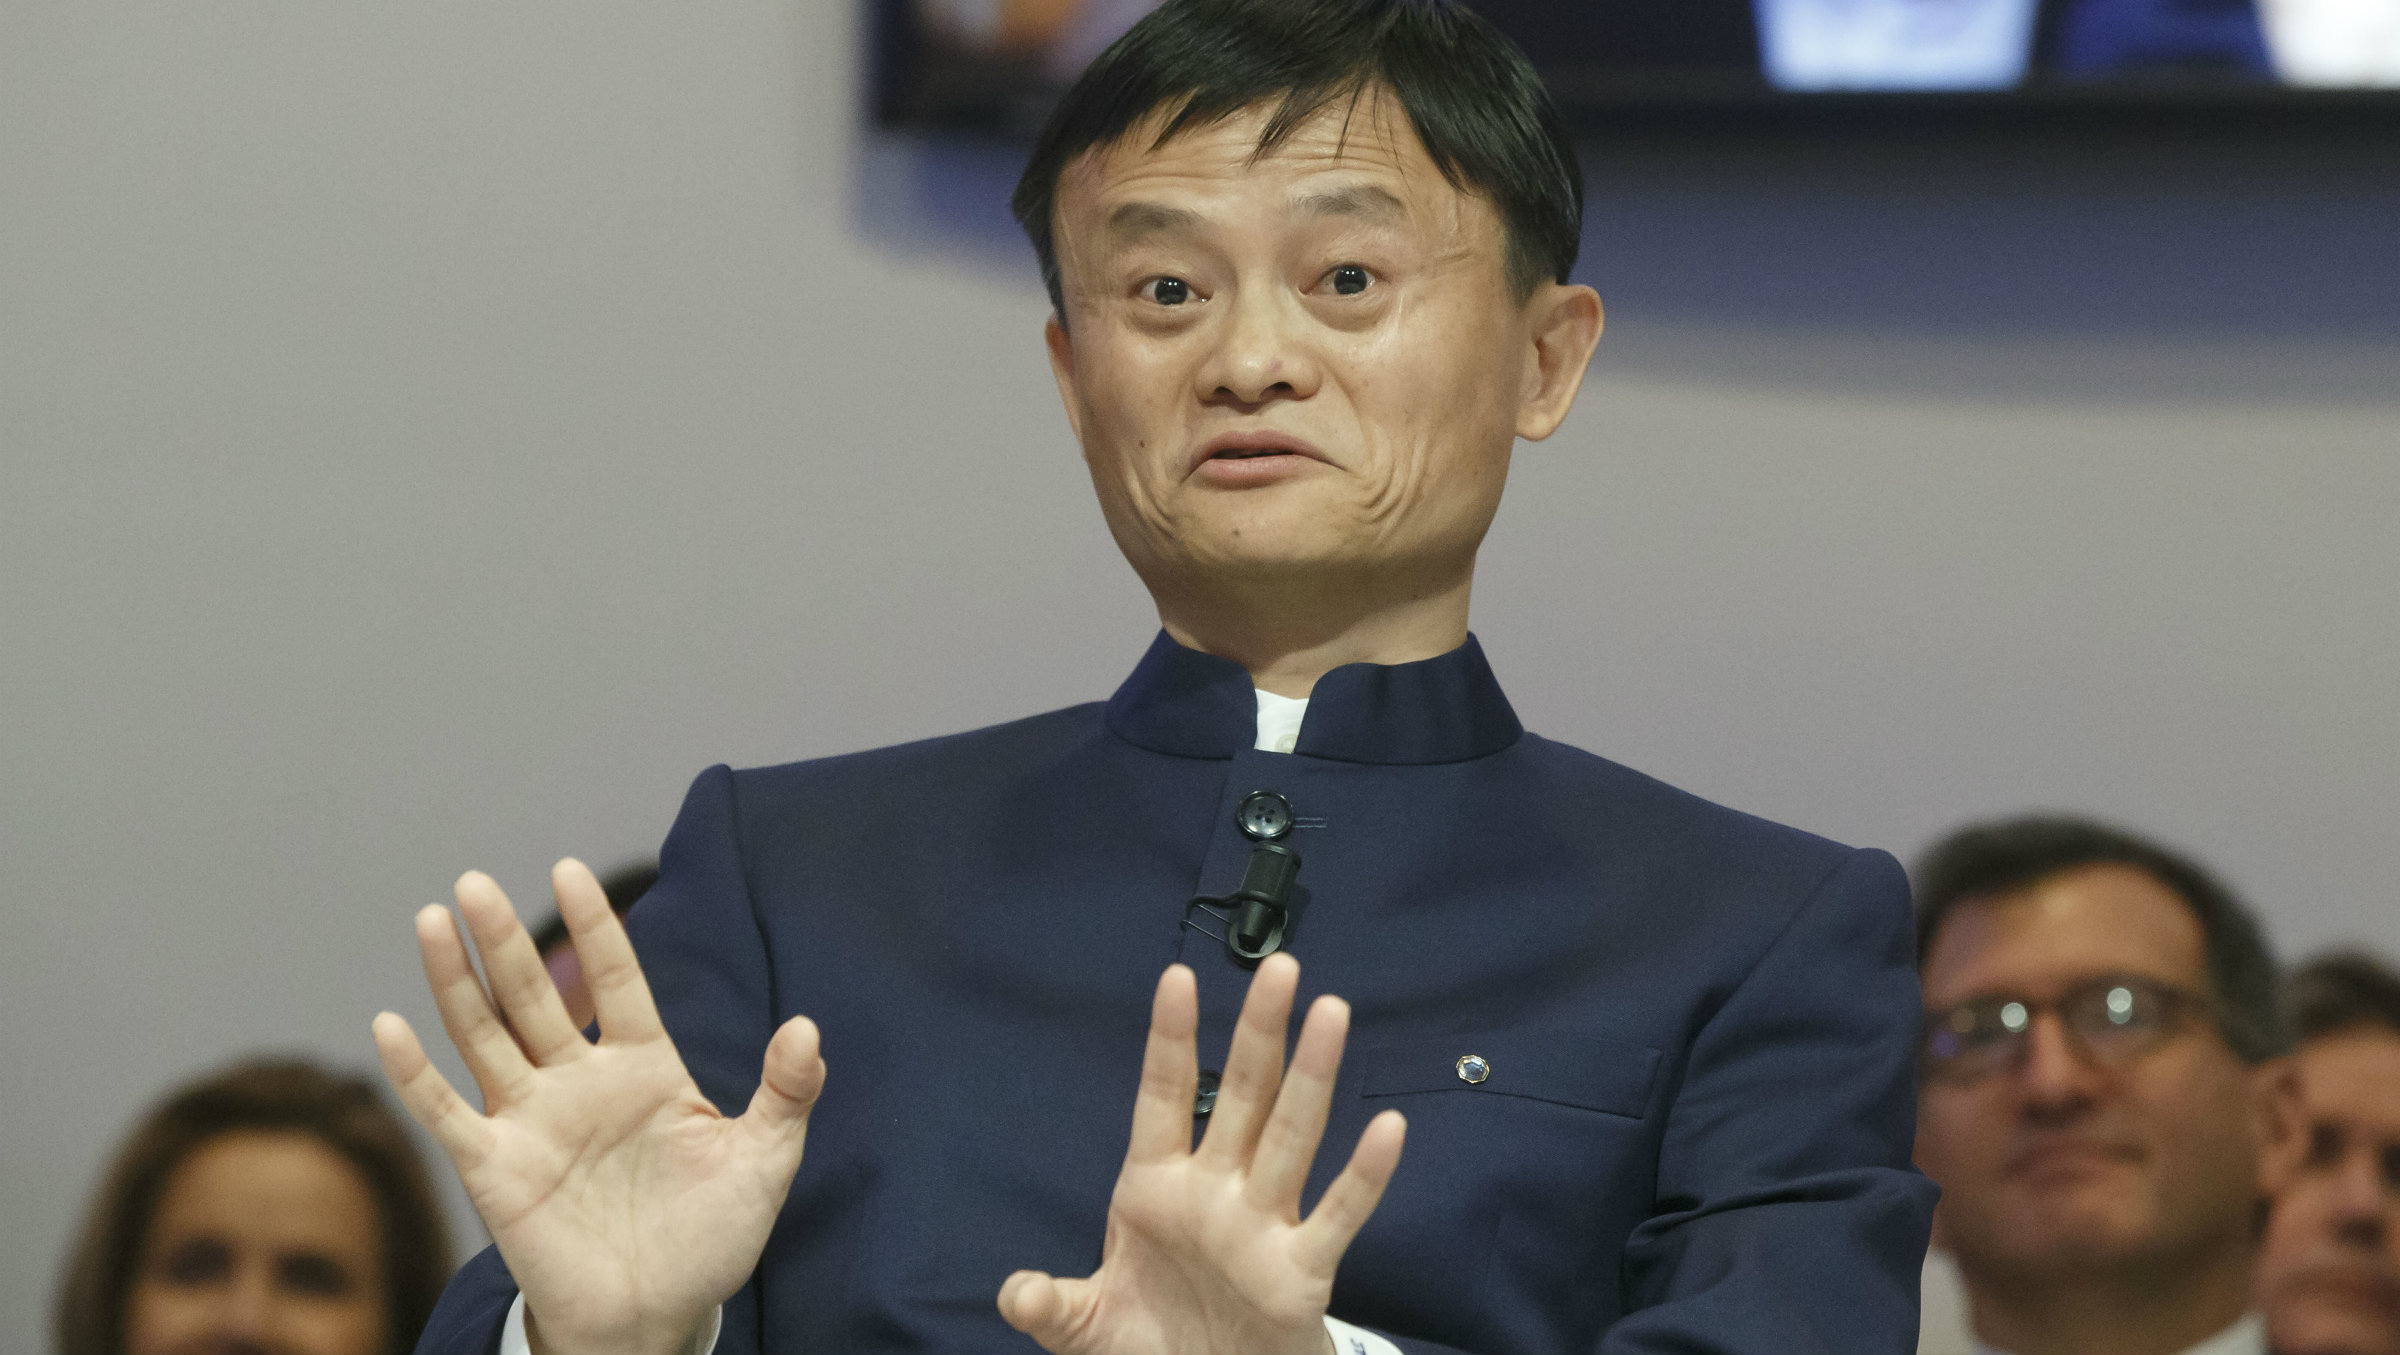 Alibaba founder Jack Ma at Davos in 2015.